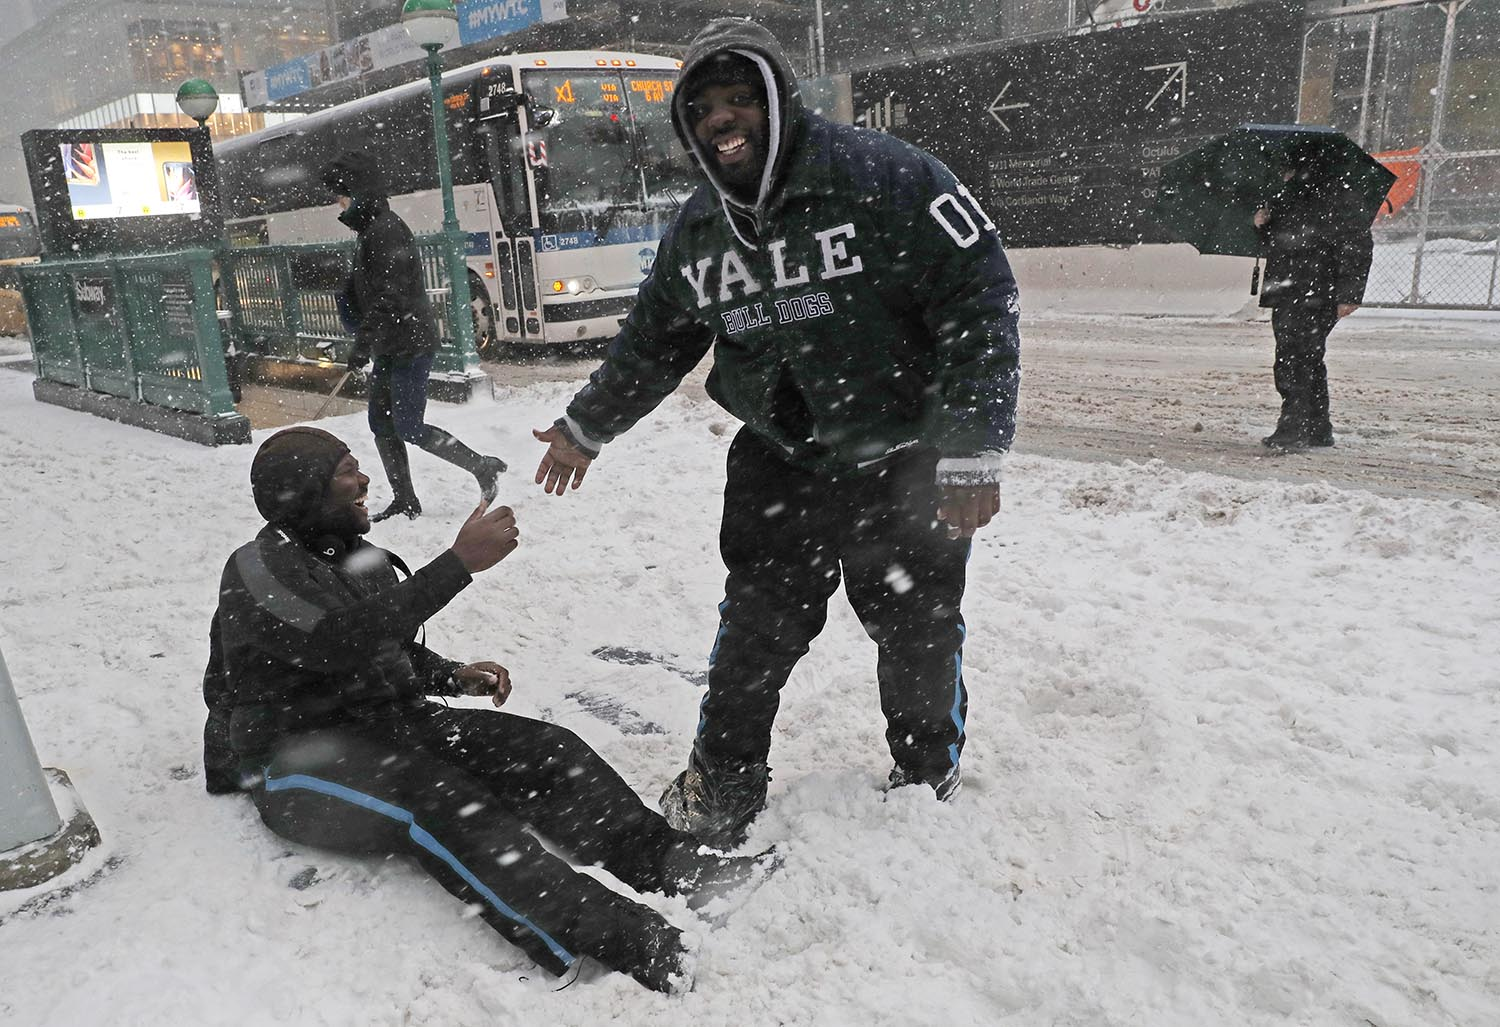 <div class='meta'><div class='origin-logo' data-origin='AP'></div><span class='caption-text' data-credit='AP Photo/Kathy Willens'>Marcus Greenaway, right, laughs as he helps his friend Psyquan Campbell up after Cambell slipped in the snow crossing a street in lower Manhattan in New York, Jan. 4, 2018.</span></div>